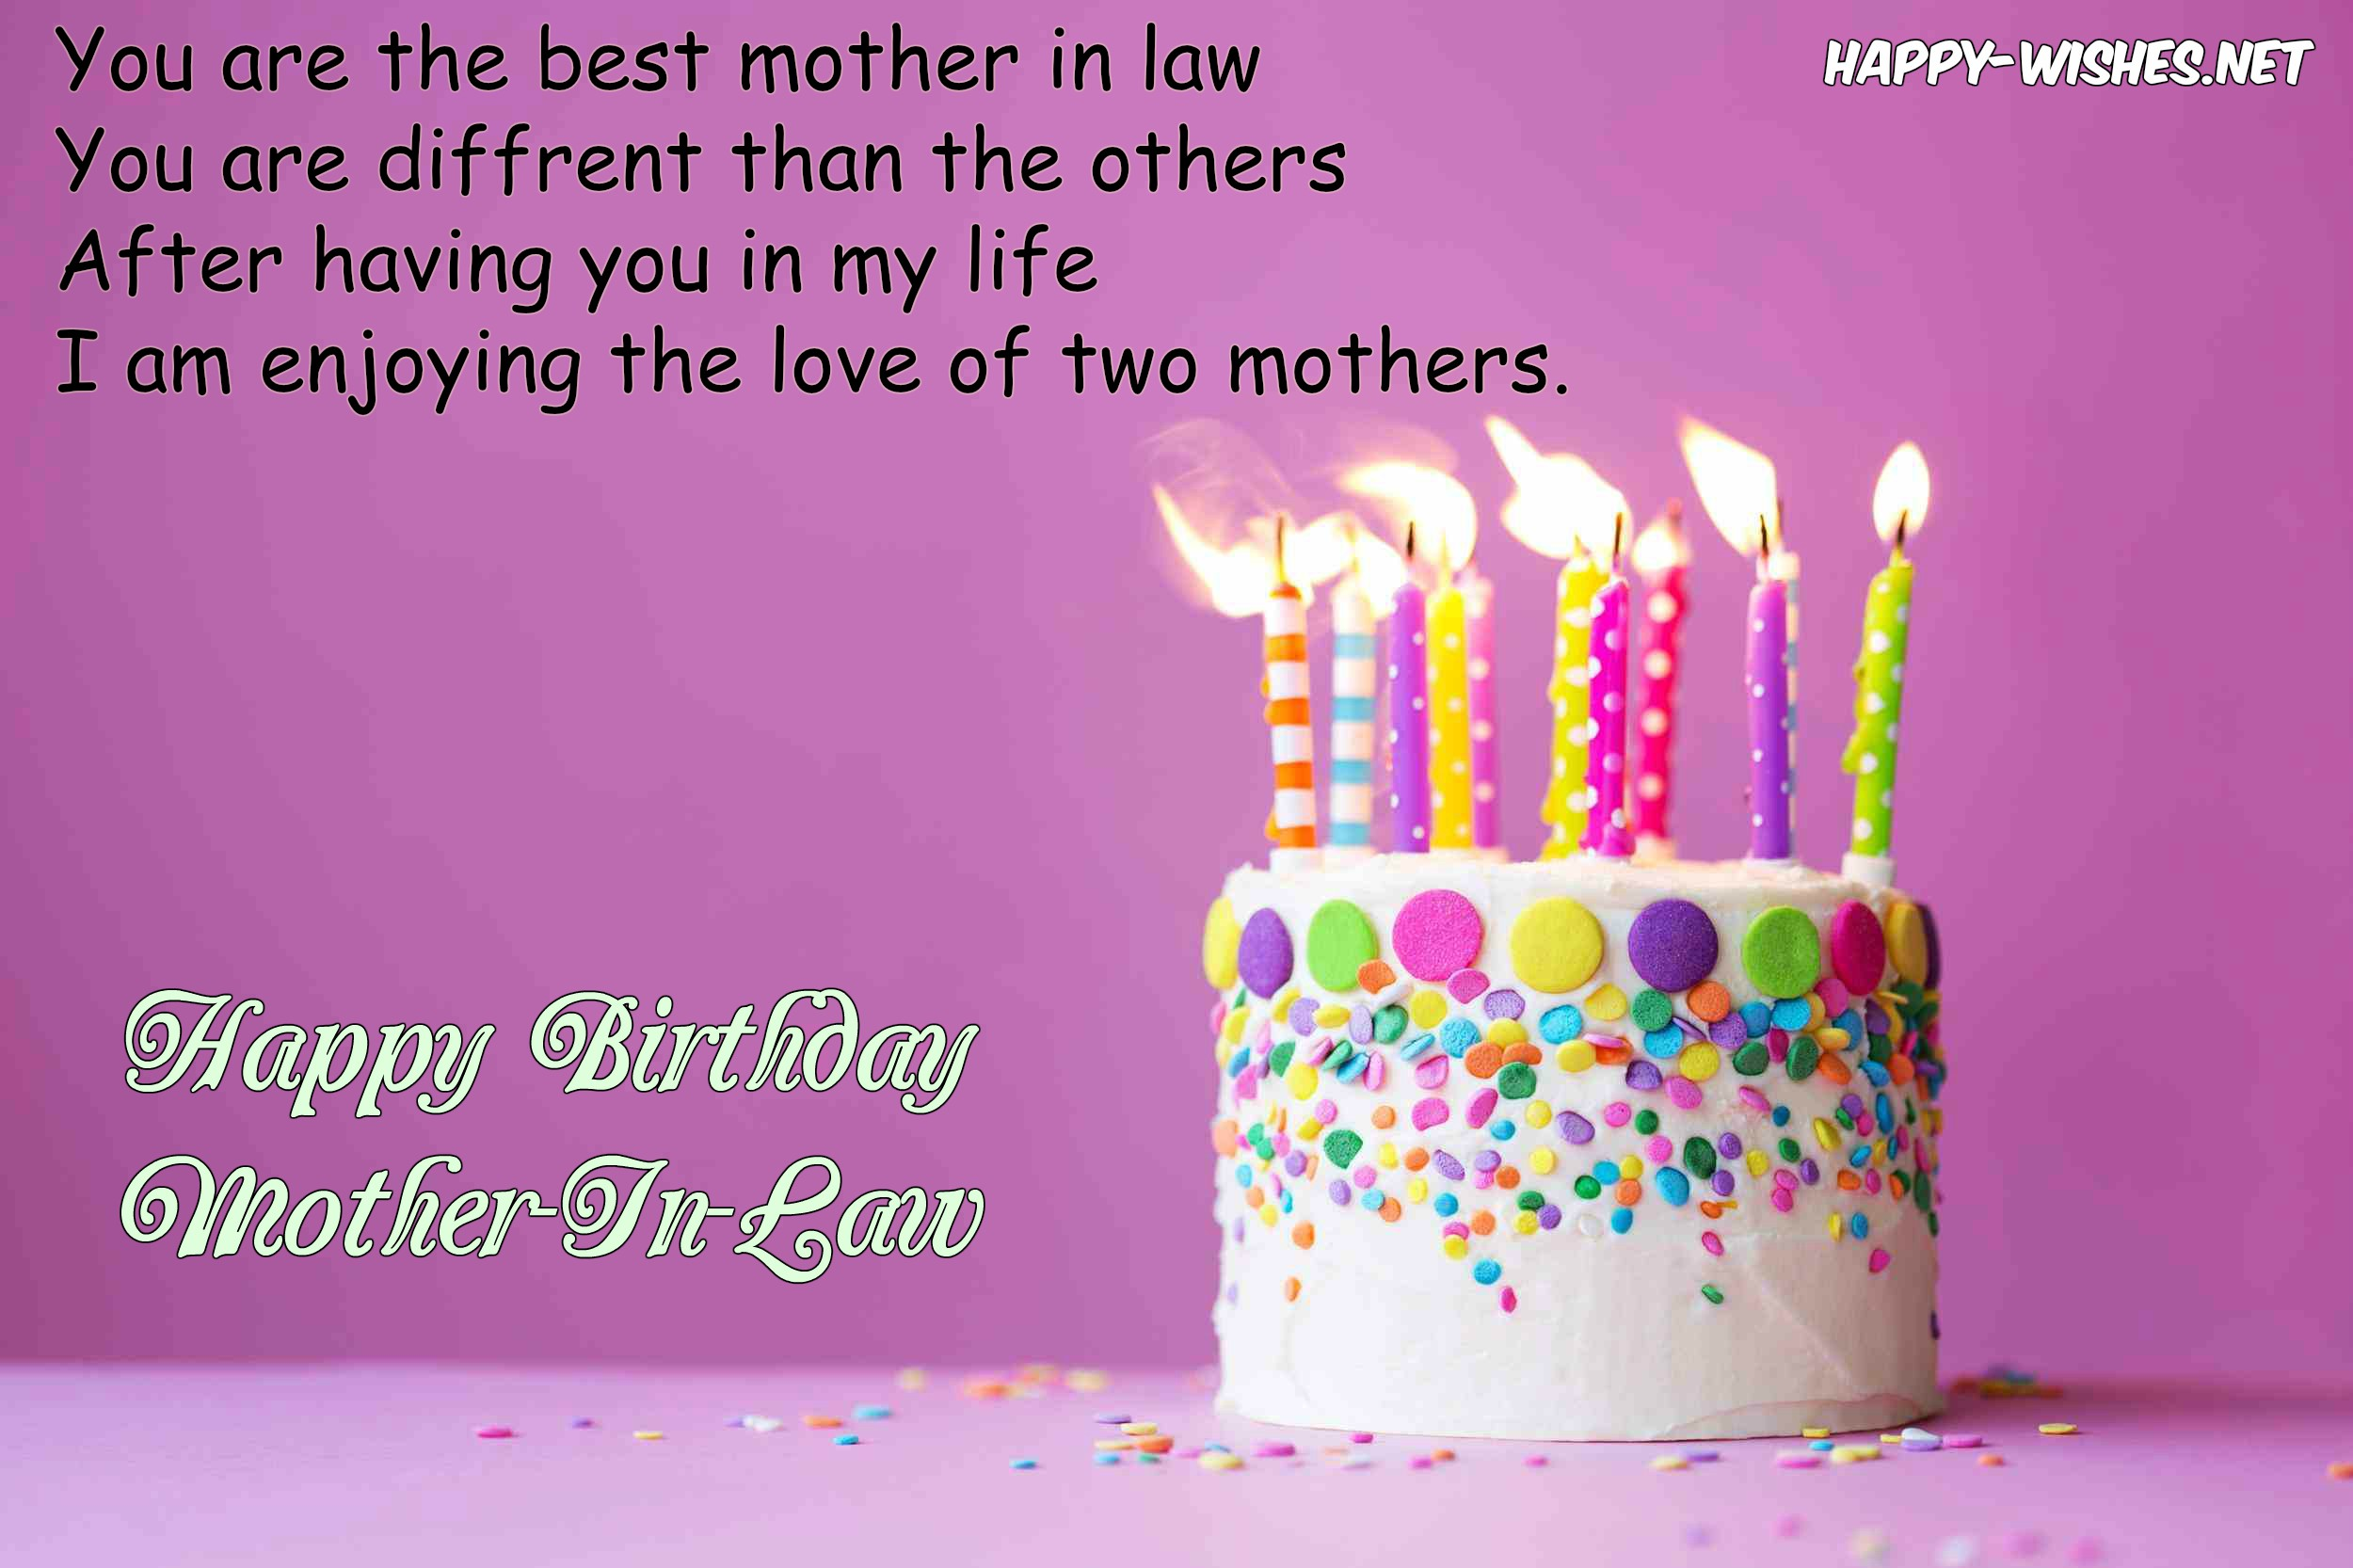 happy birthday mother in law images ; 8HappyBirthdaywishesformother-in-law-compressed